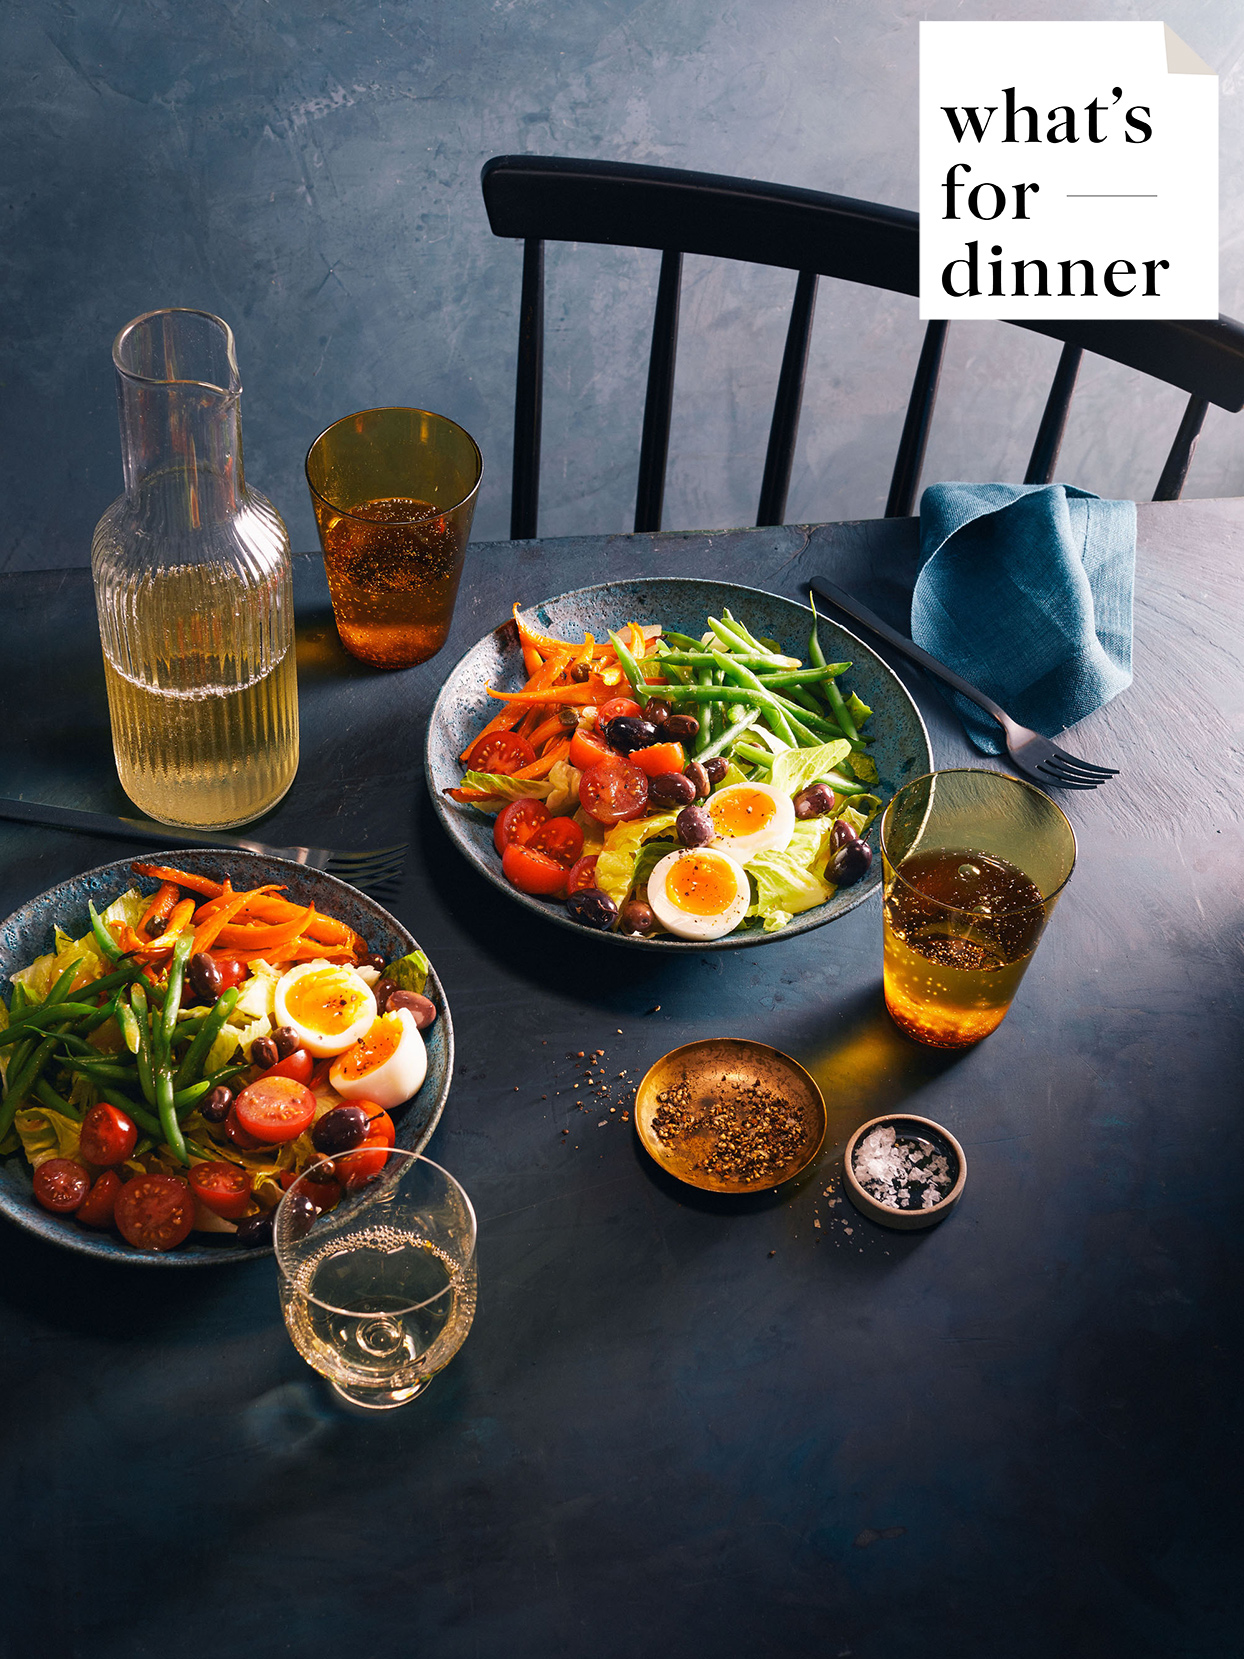 table with two plates of roasted carrot nicoise